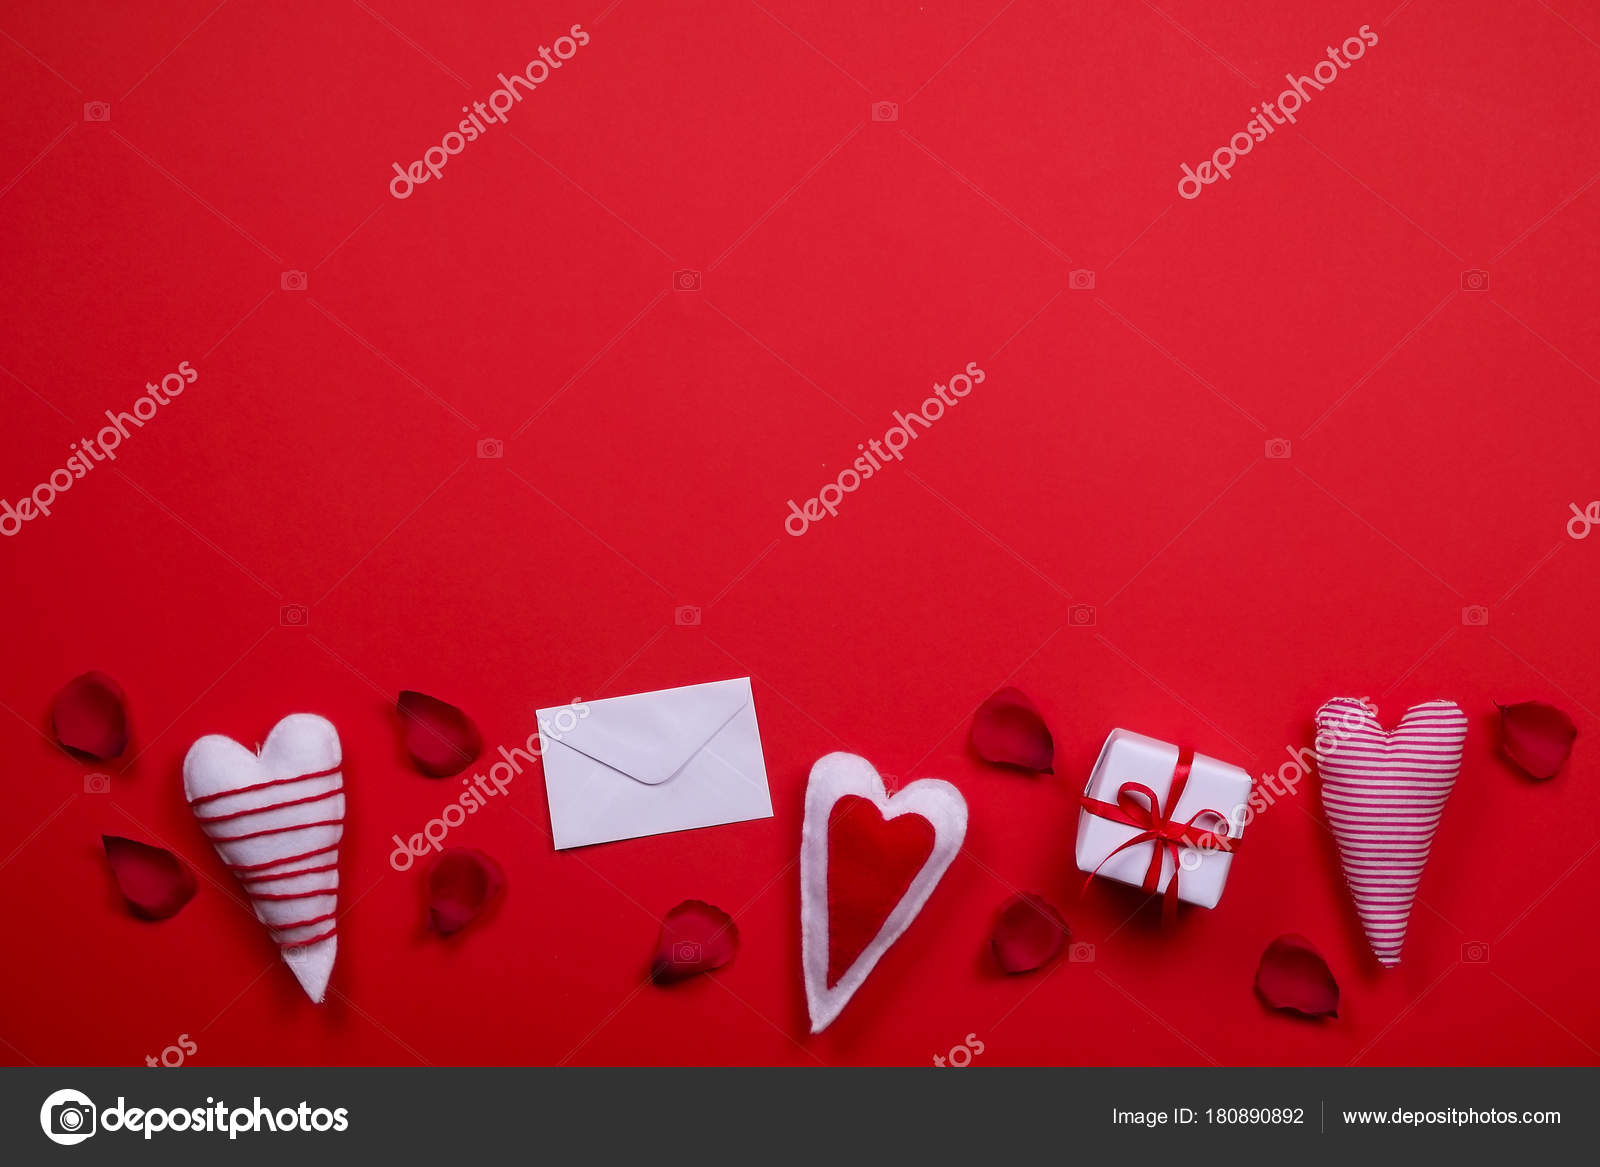 Happy Valentines Day Love Symbols Concept On Bright Red Background